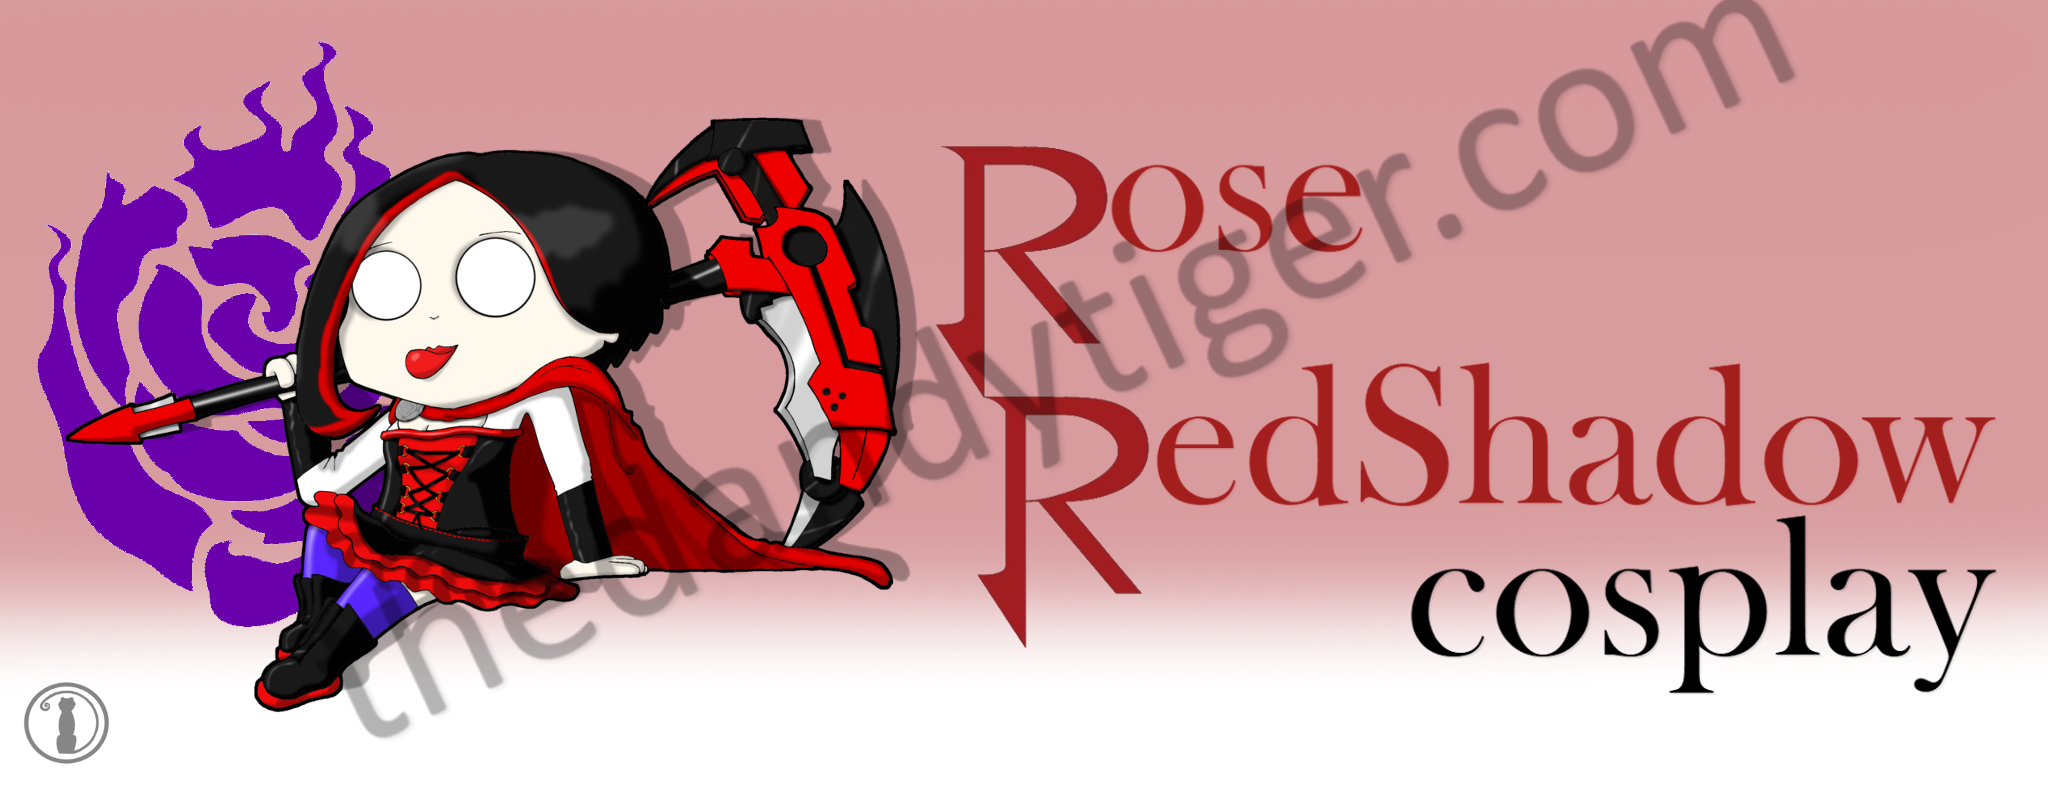 wm Rose RedShadow Cosplay FB Cover 01.png